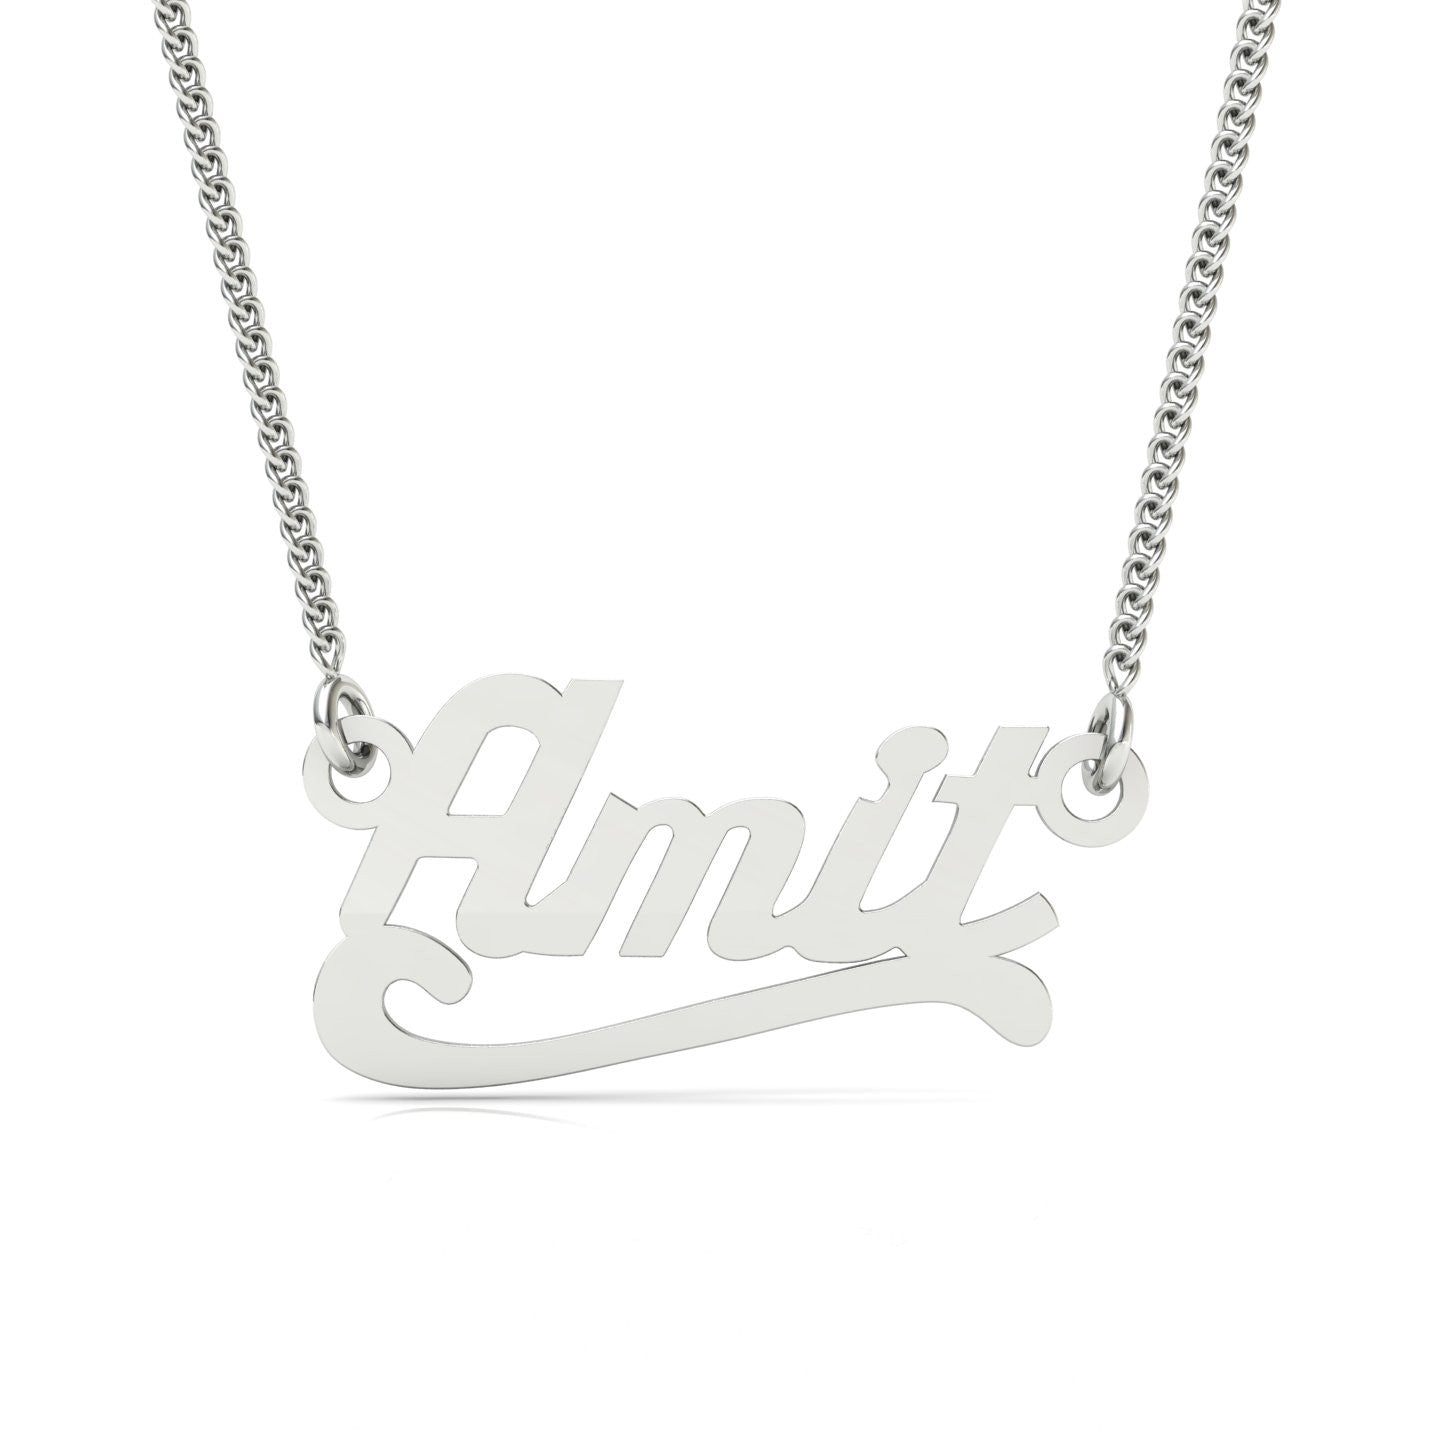 style inside plated me gold name personalized jewellery breakpoint lindsay cursive necklace necklaces